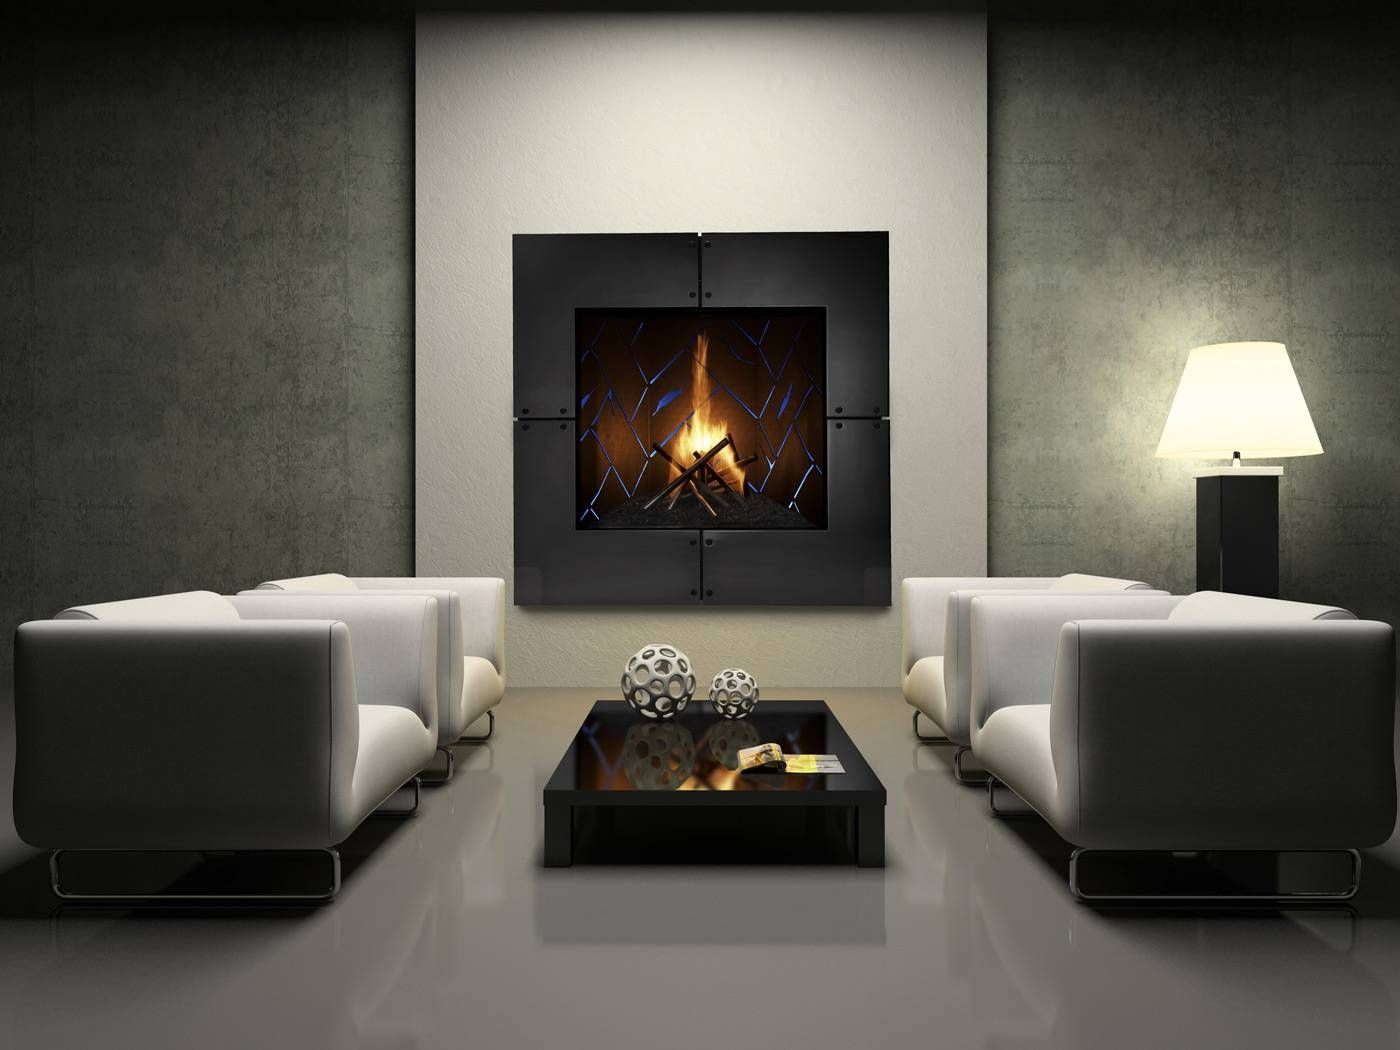 We have this Fireplace in our Showroom, It's Amazing